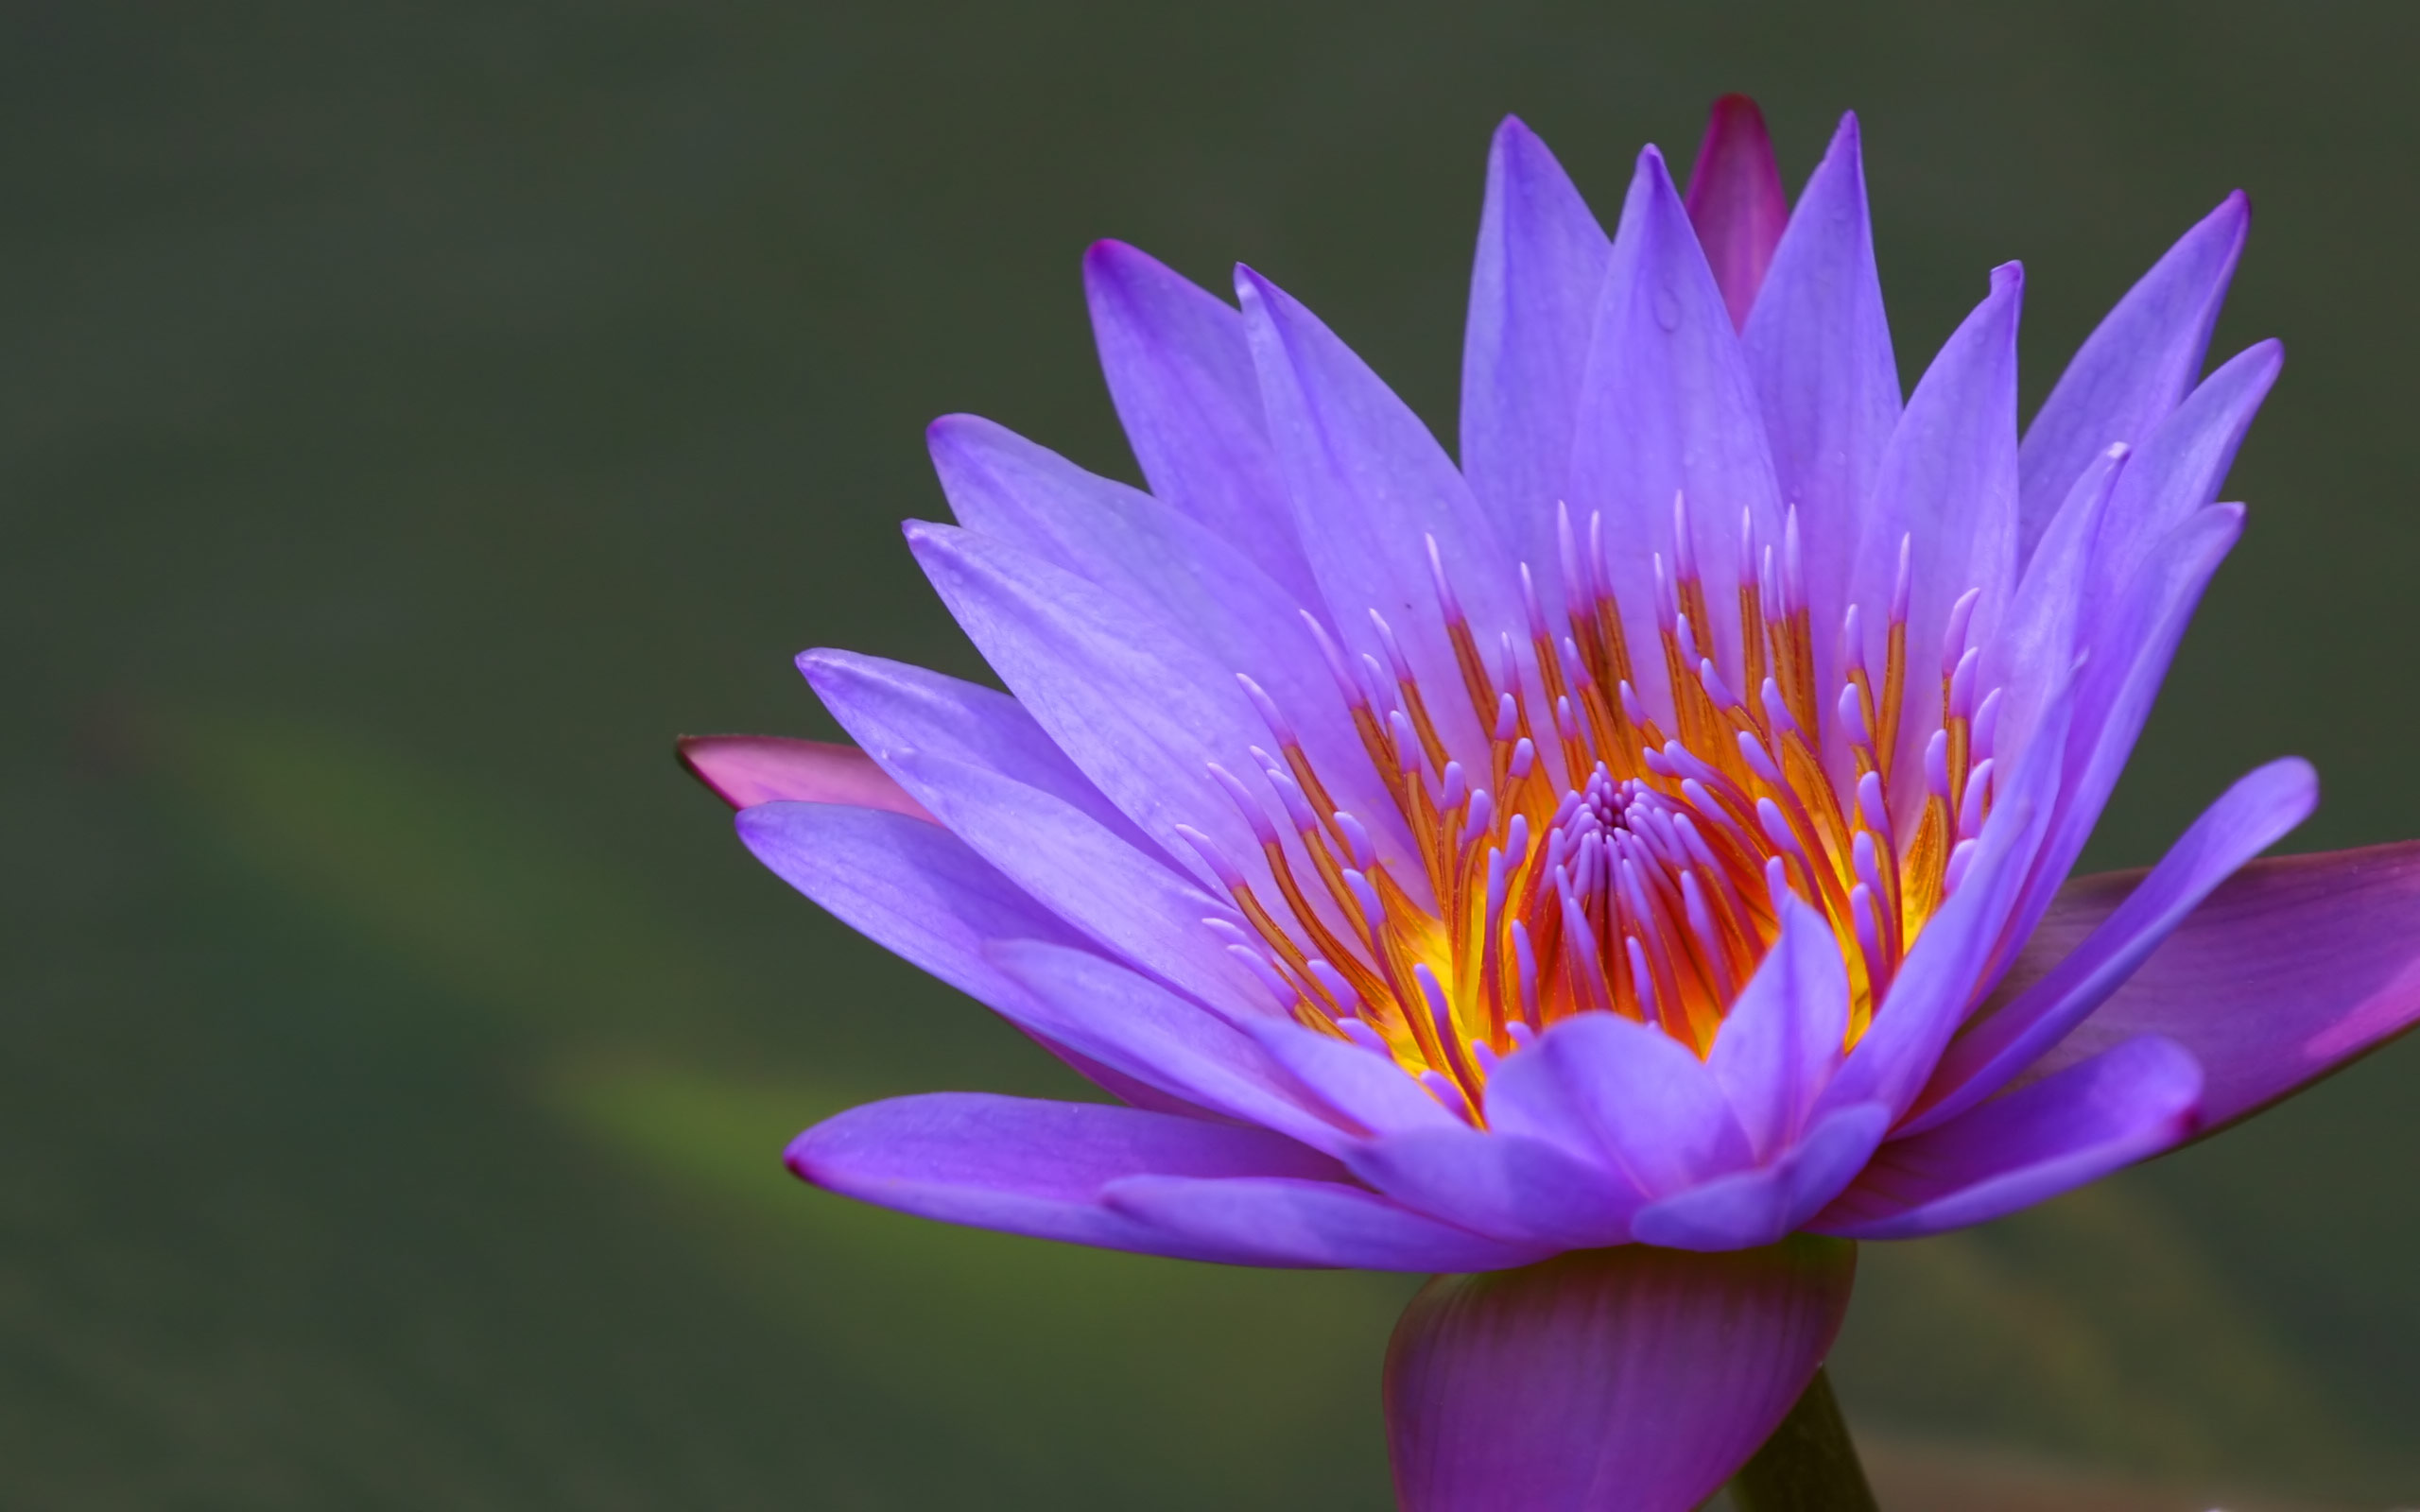 Water Lily Flower Wallpapers 2560x1600